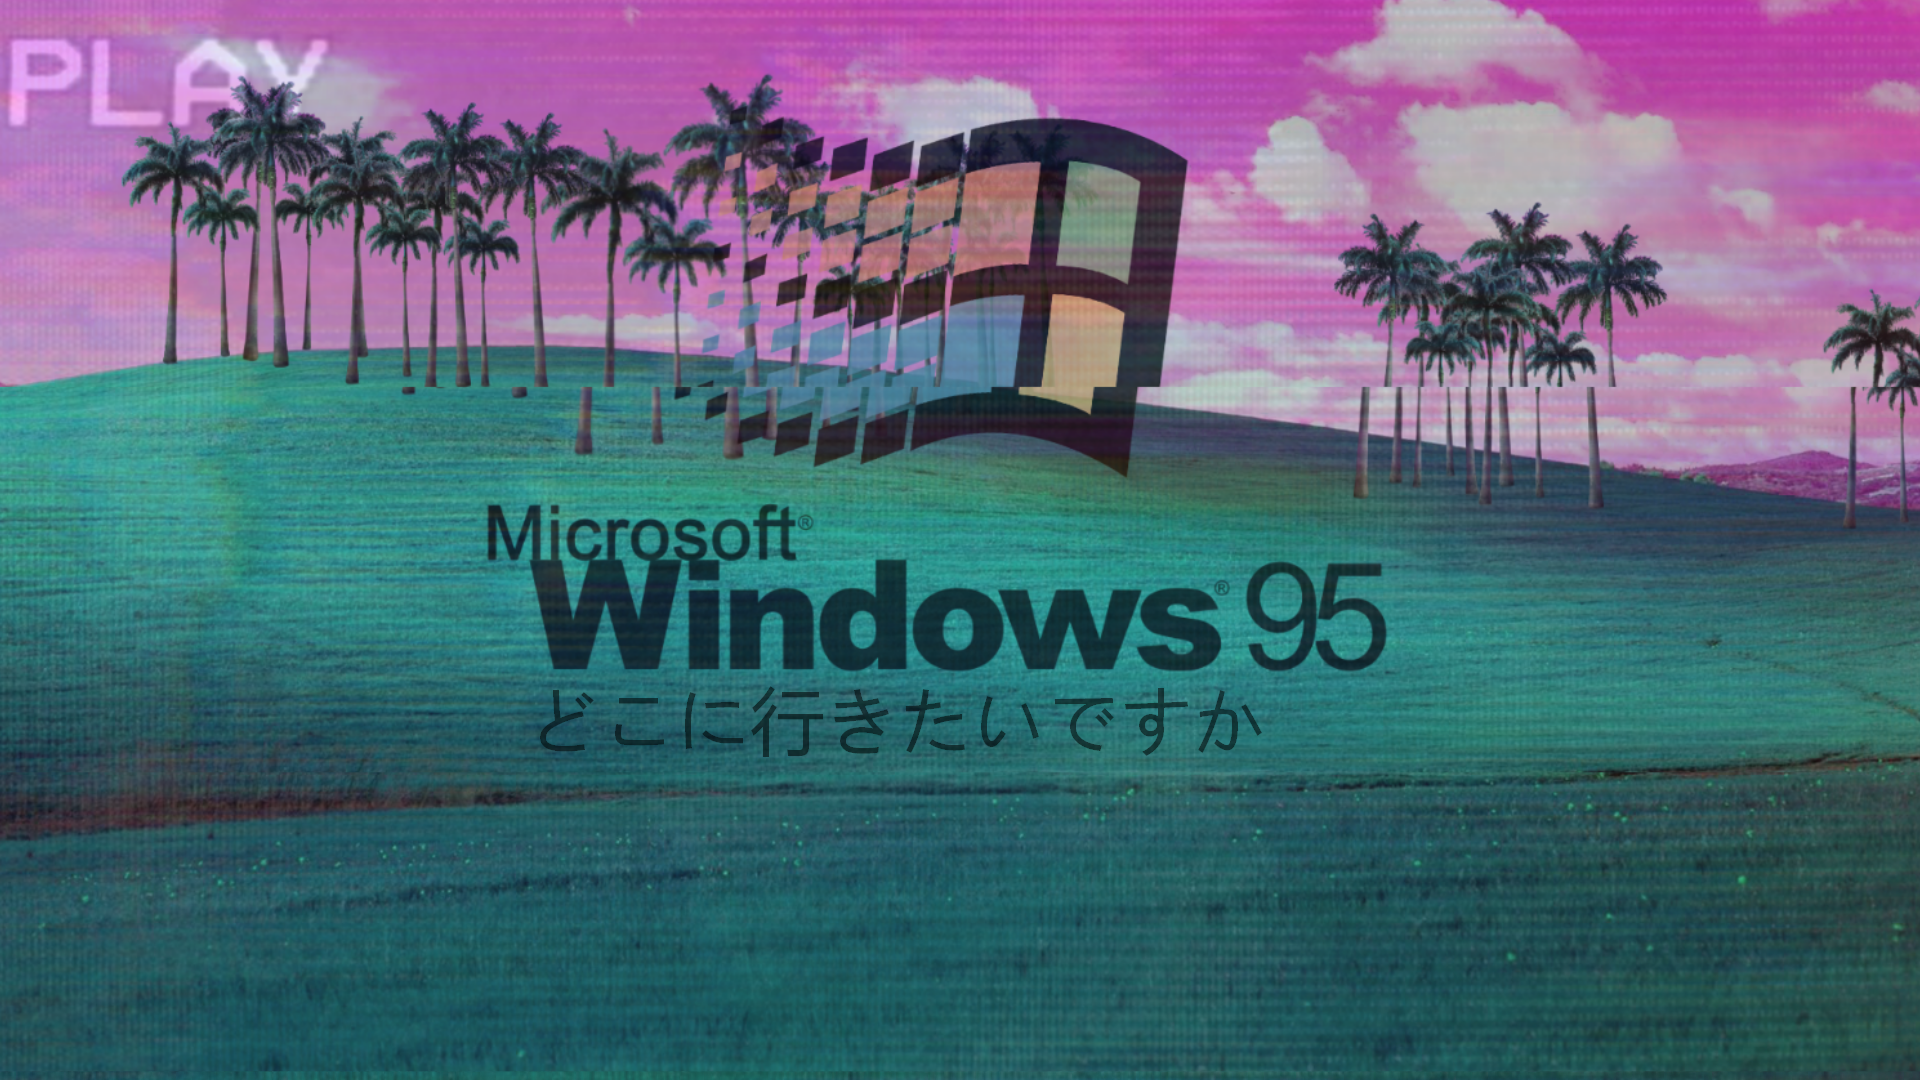 Windows Aesthetic Wallpapers Top Free Windows Aesthetic Backgrounds Wallpaperaccess